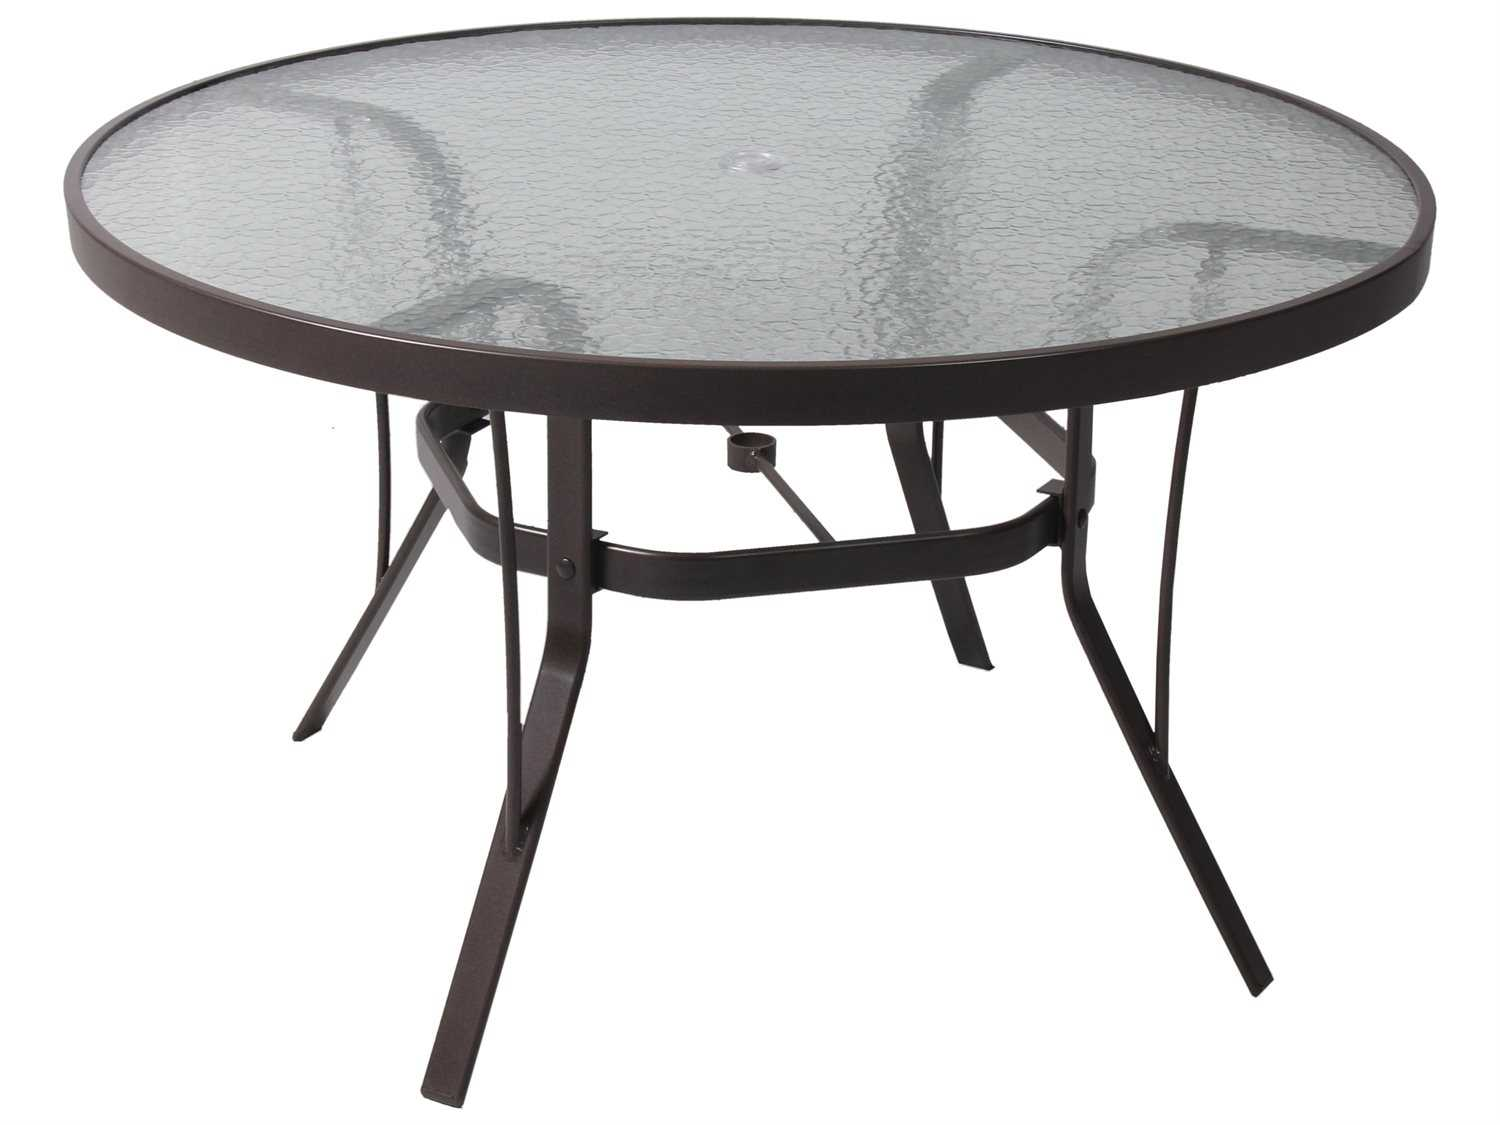 Suncoast Cast Aluminum 36 Round Glass Top Dining Table  : SU42KDAzm from www.patioliving.com size 1500 x 1125 jpeg 67kB